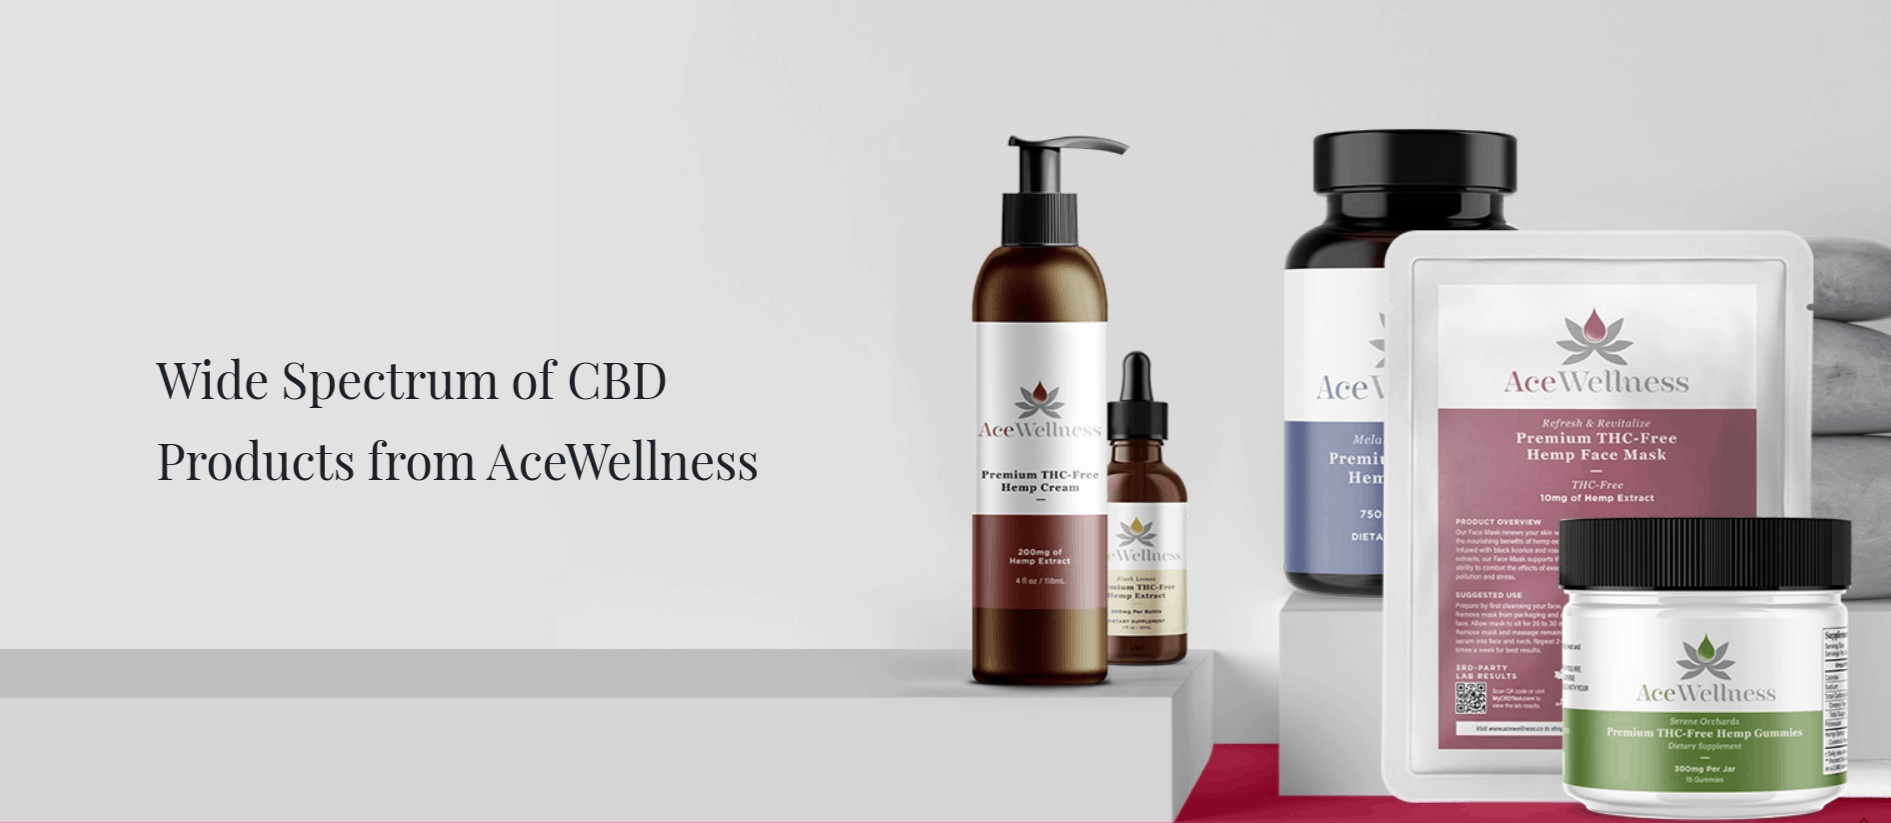 Ace Wellness CBD Coupon Code Product Range